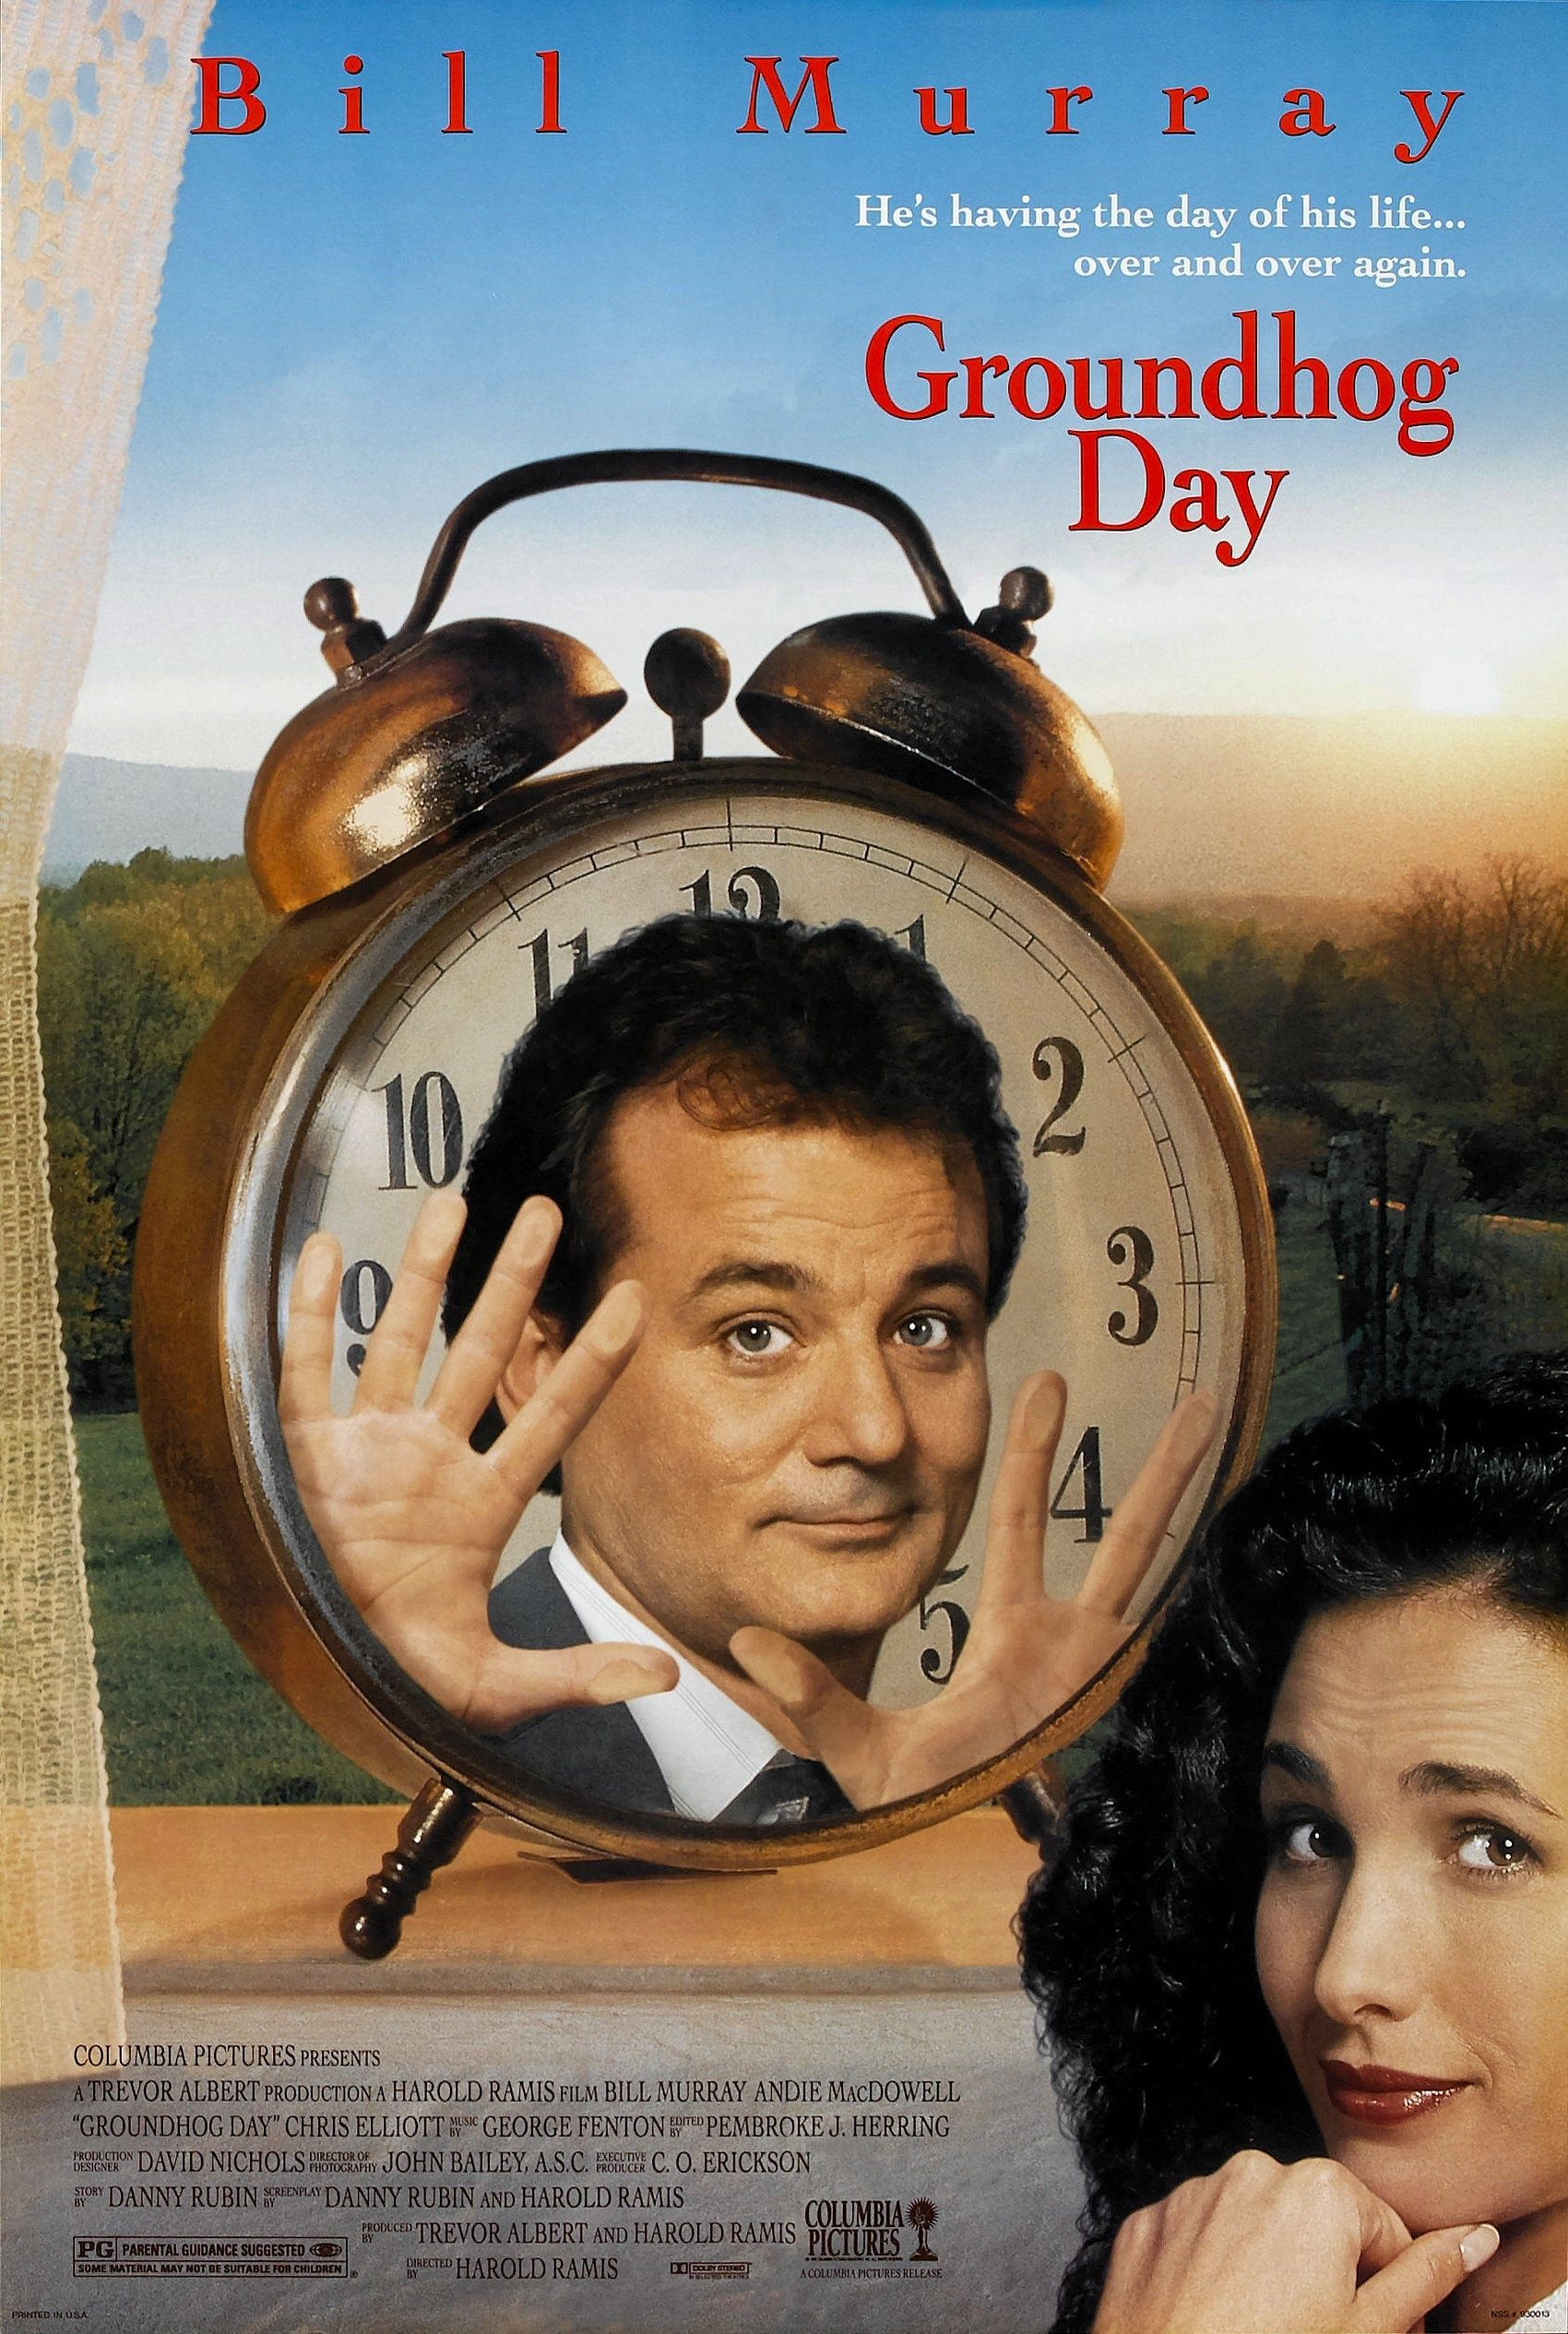 Groundhog Day (1993) If you're ever looking for a hilarious comedy that doubles as a 101-minute thought experiment in philosophy, well, there's honestly only one movie to turn to, and that's Groundhog Day , in which a curmudgeon-y weatherman is inexplicably caught in a time loop that forces him to live the same day over and over (and over ) again for years on end.